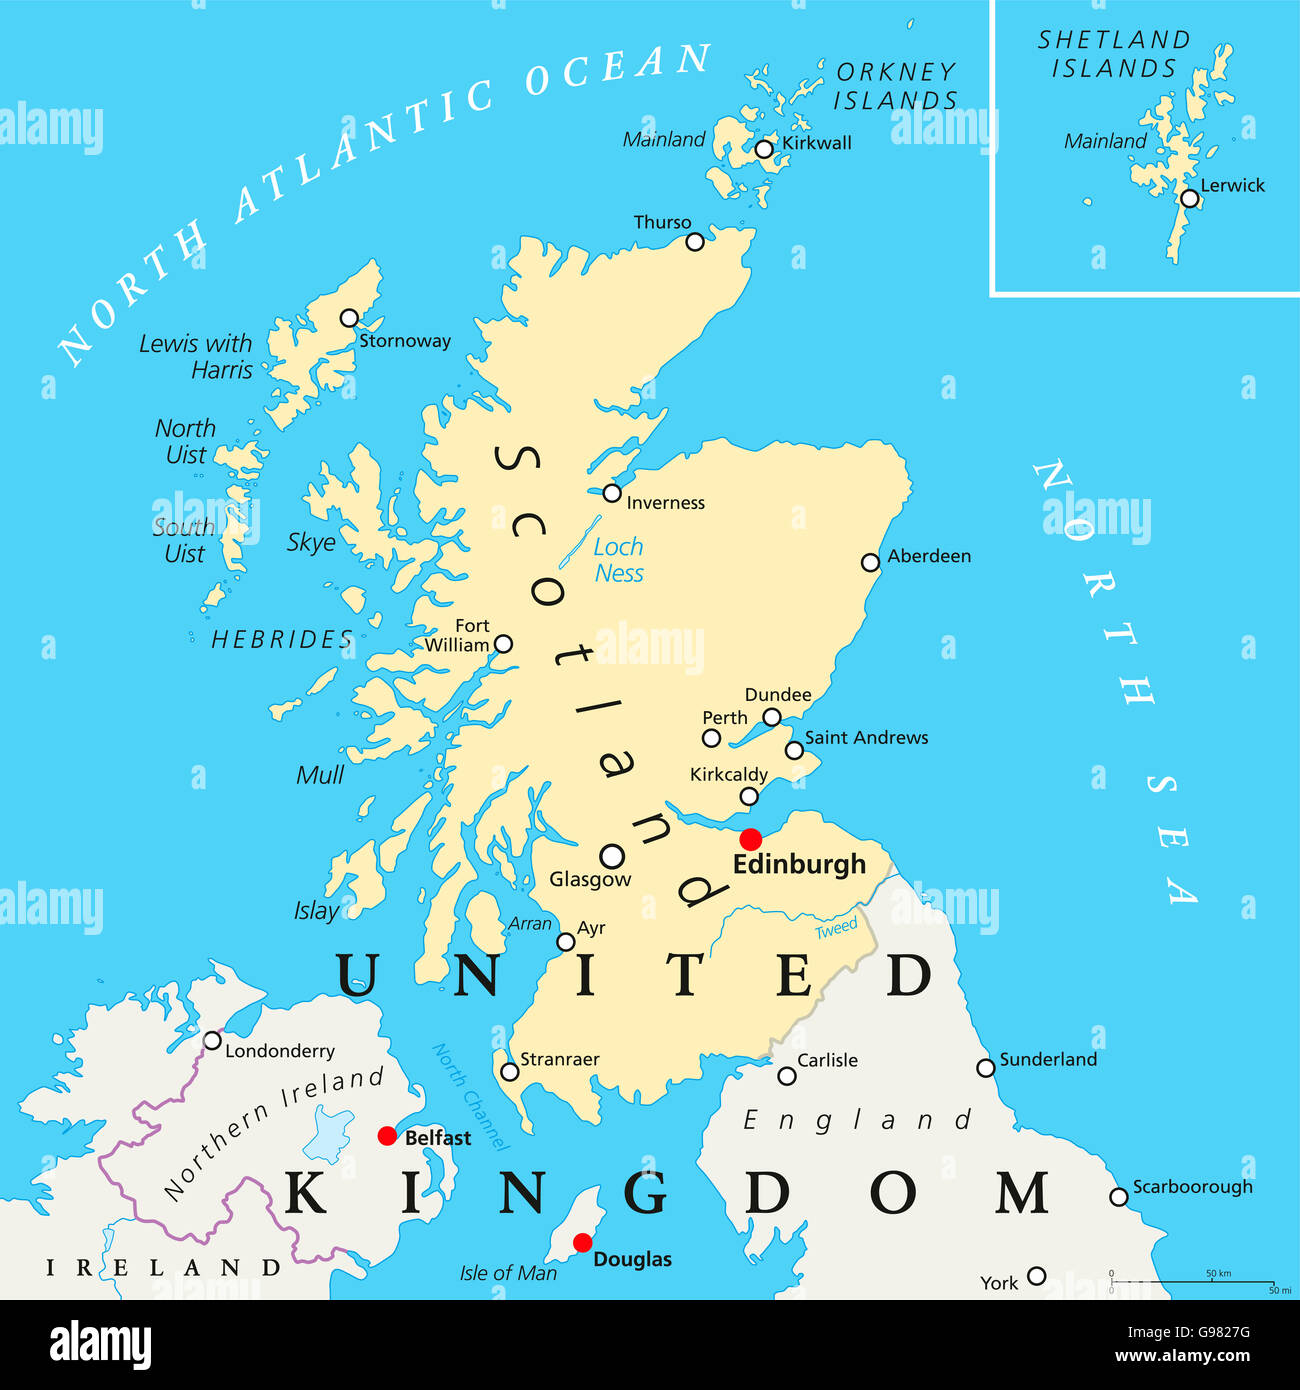 Edinburgh Scotland Map Scotland political map with capital Edinburgh, national borders  Edinburgh Scotland Map